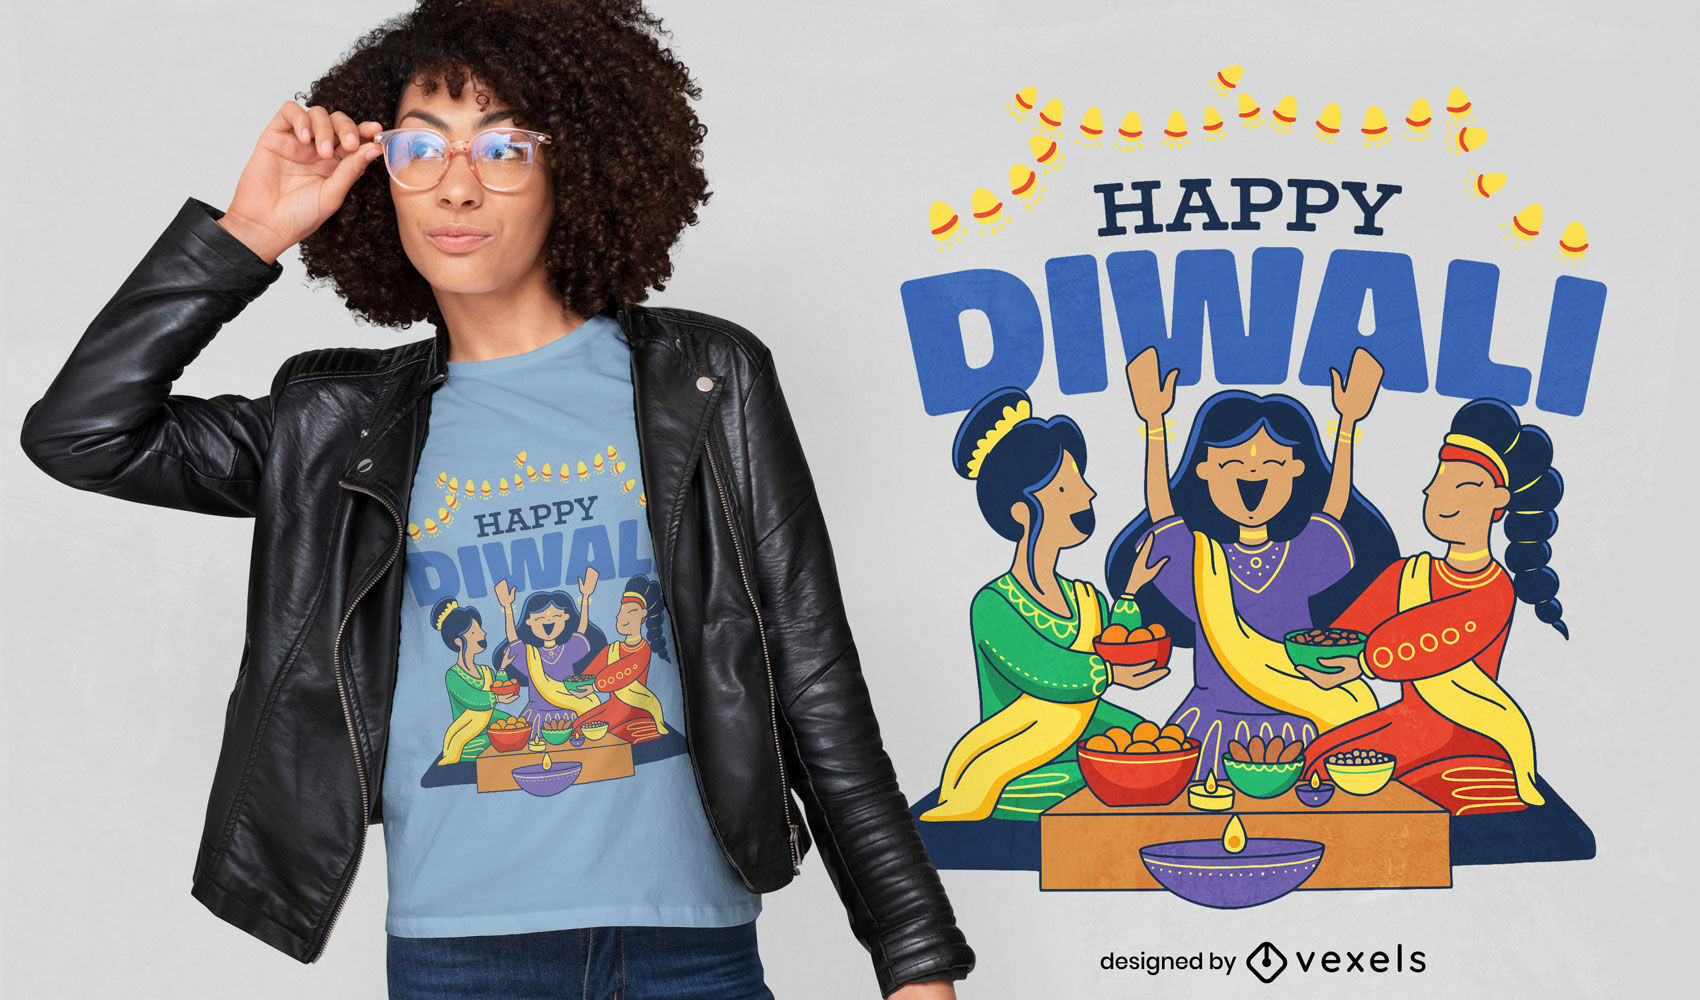 Happy diwali meal and people t-shirt design